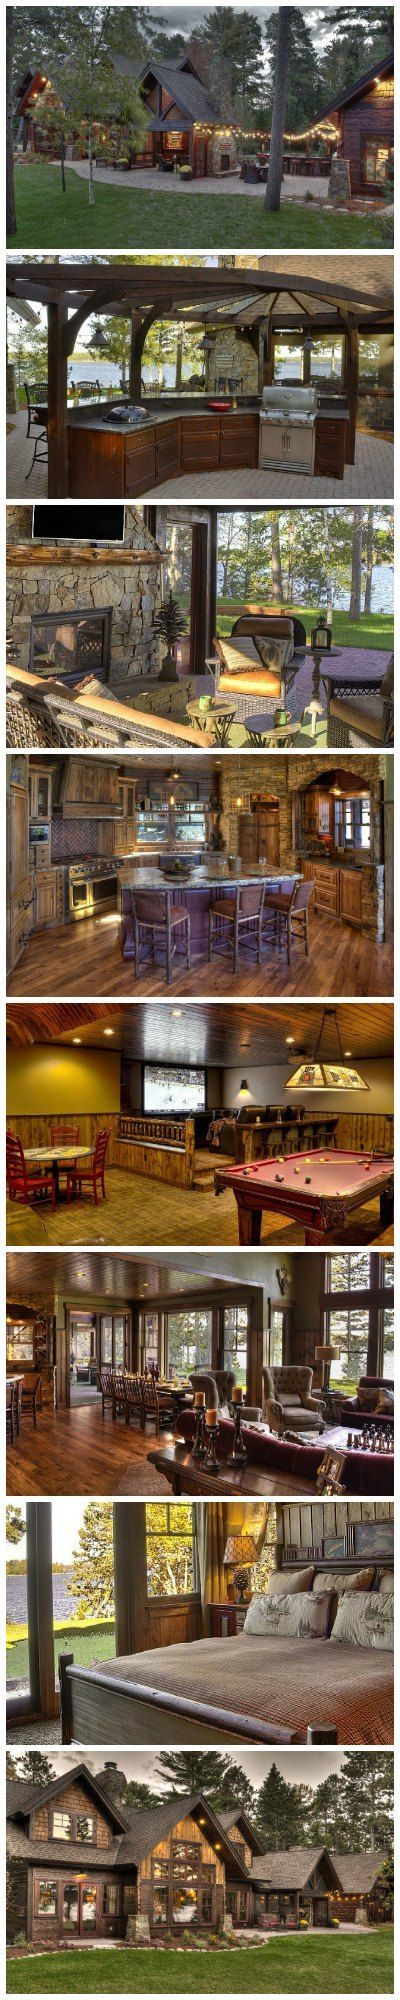 Furniture For The Kitchen 1000 Ideas About Log Cabin Furniture On Pinterest Beauty Cabin